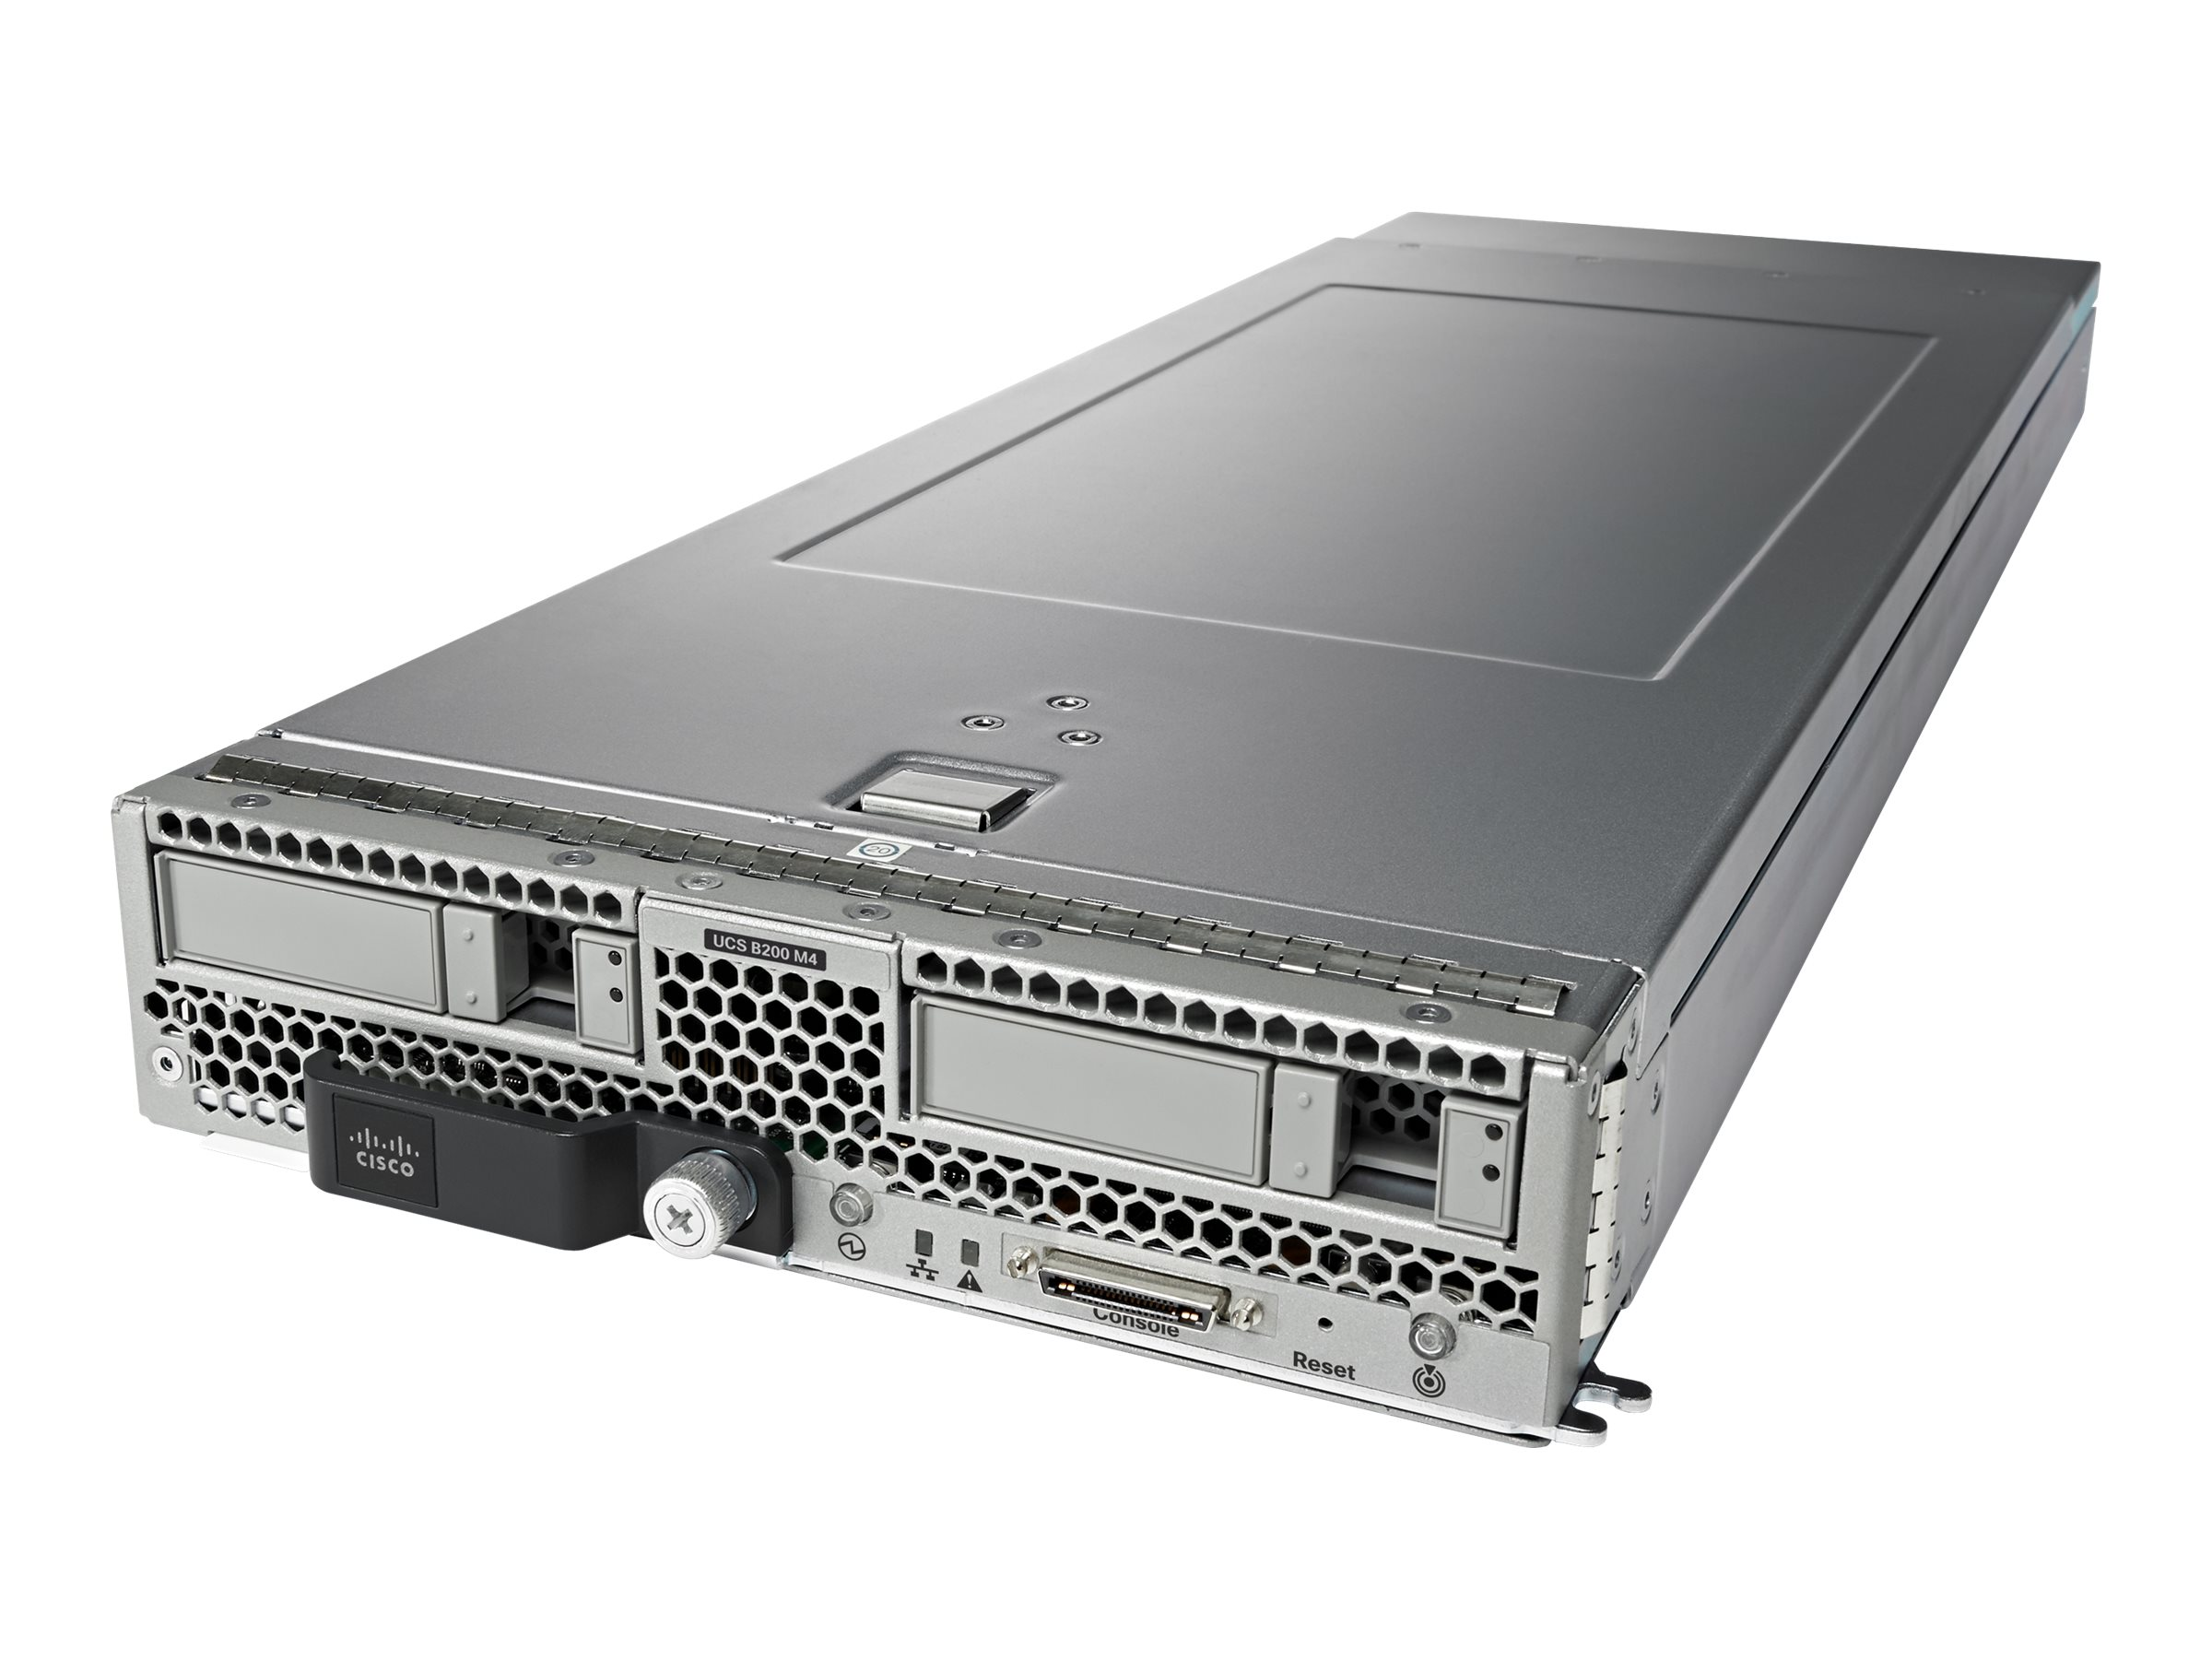 Cisco UCS SP Select B200 M4 Advanced2 Blade (2x)Xeon E5-2680 v3 256GB VIC1340, UCS-SP-B200M4-A2, 30839561, Servers - Blade